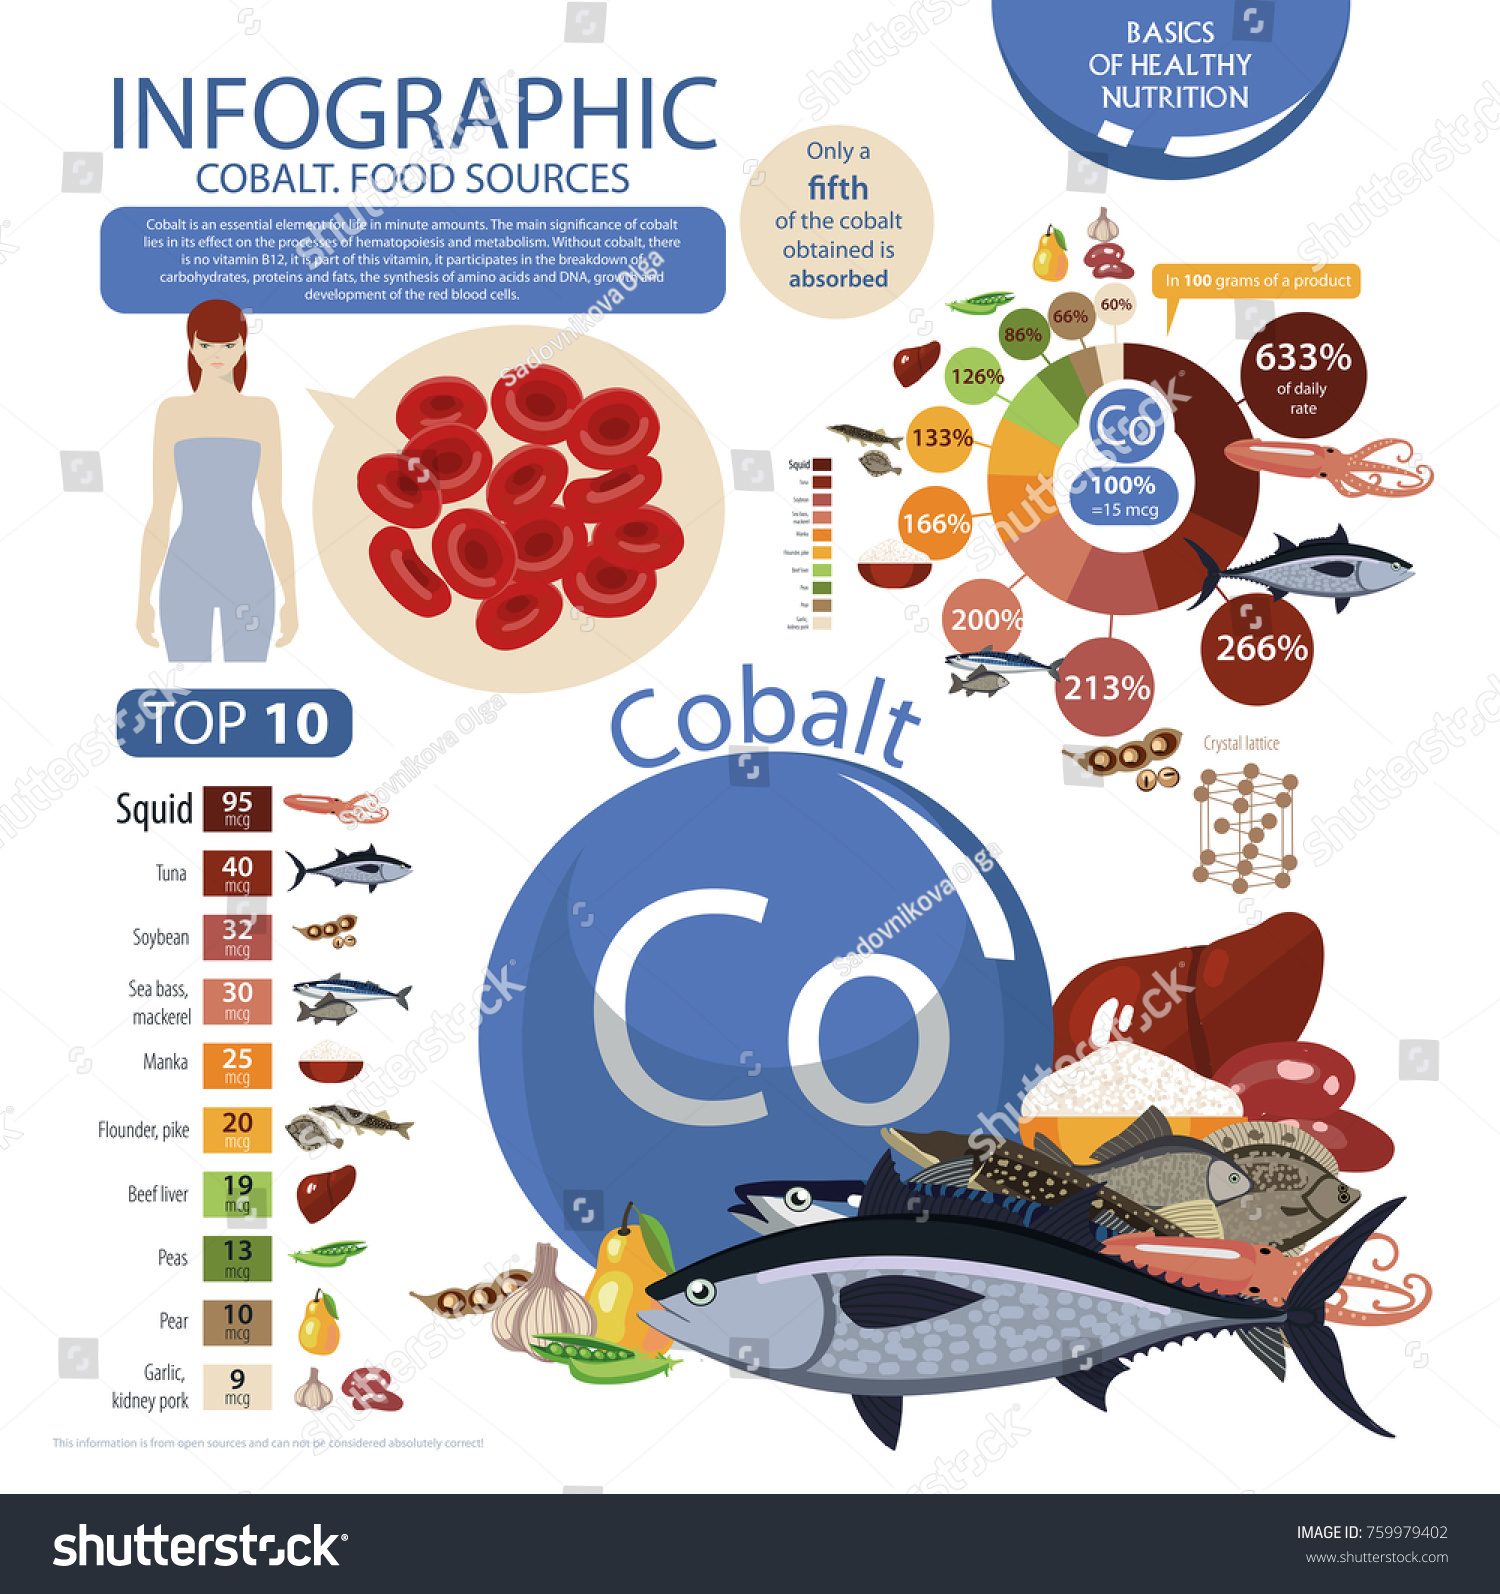 Infographics cobalt food sources foods maximum stock vector food sources foods with the maximum cobalt content pie nvjuhfo Image collections